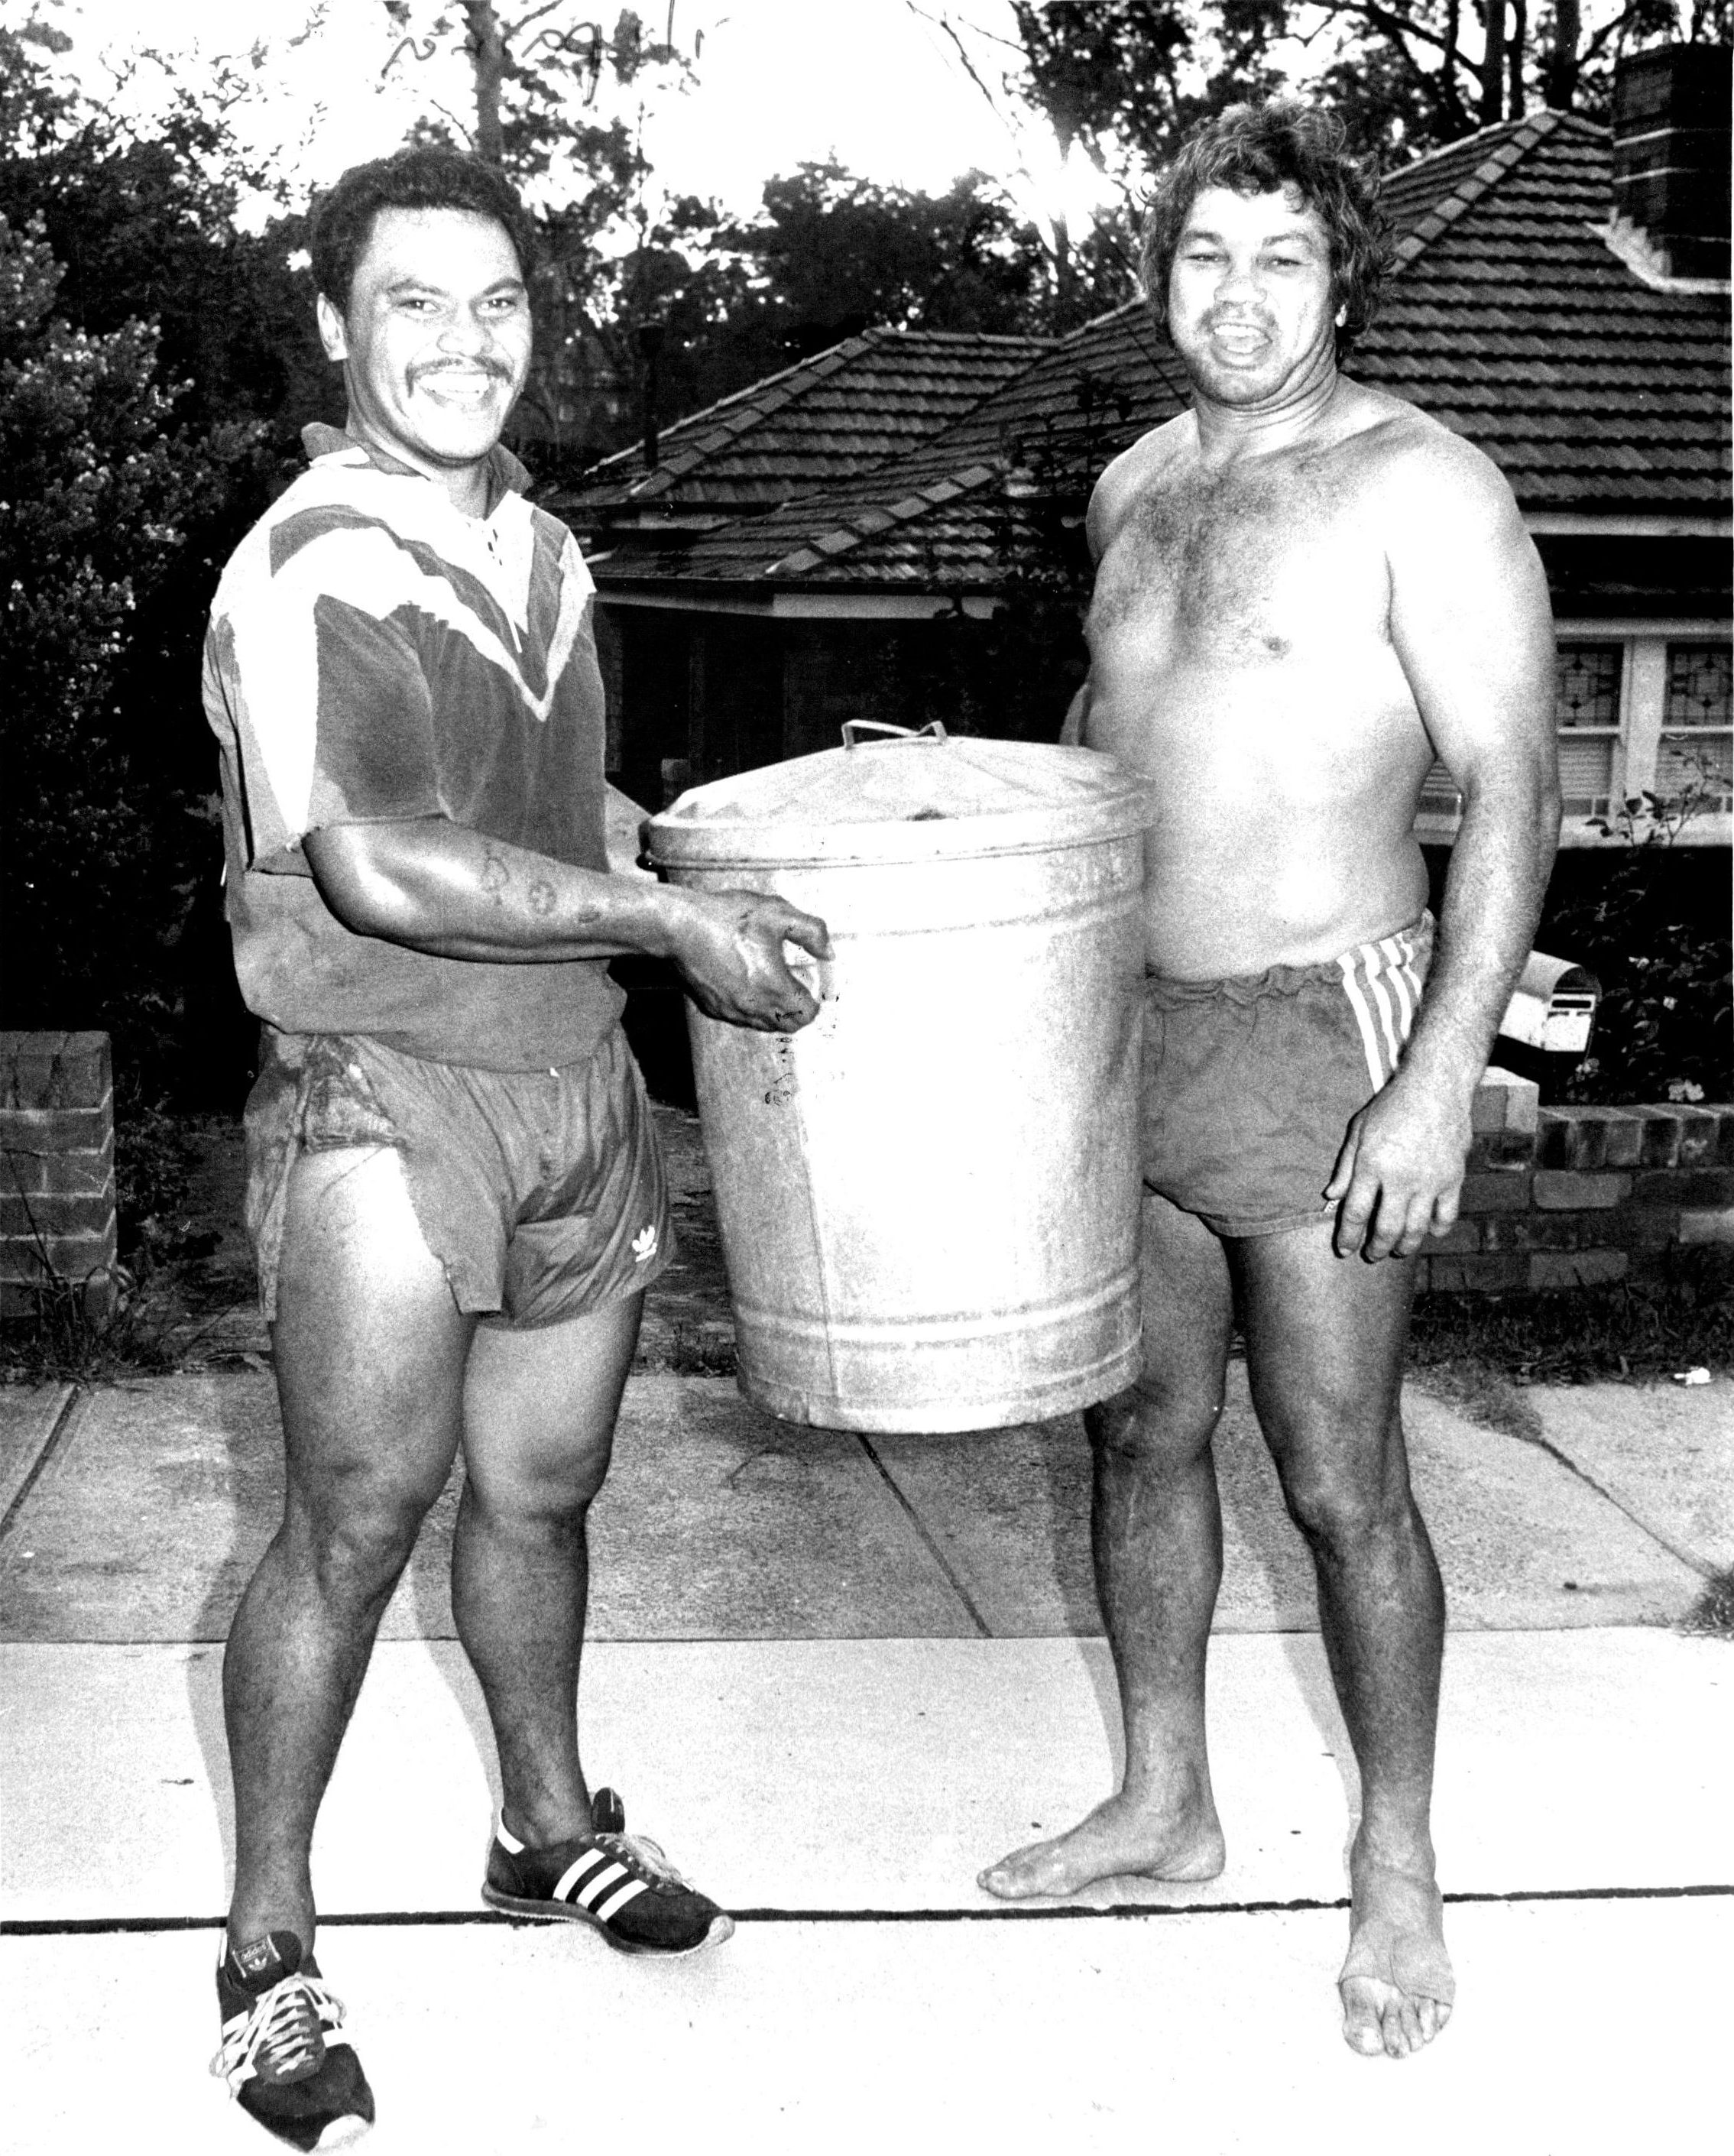 "New rugby league player from New Zealand,Olsen Filipaina, who will play with Balmain, was pictured early this morning on a garbage run in the Ryde area. He is pictured handing over the garbage bin to one of the people on his run...... Parramatta star and""Sun"" columnist Artie Beetson. January 31, 1980. (Photo by Russell McPhedran/Fairfax Media via Getty Images)."